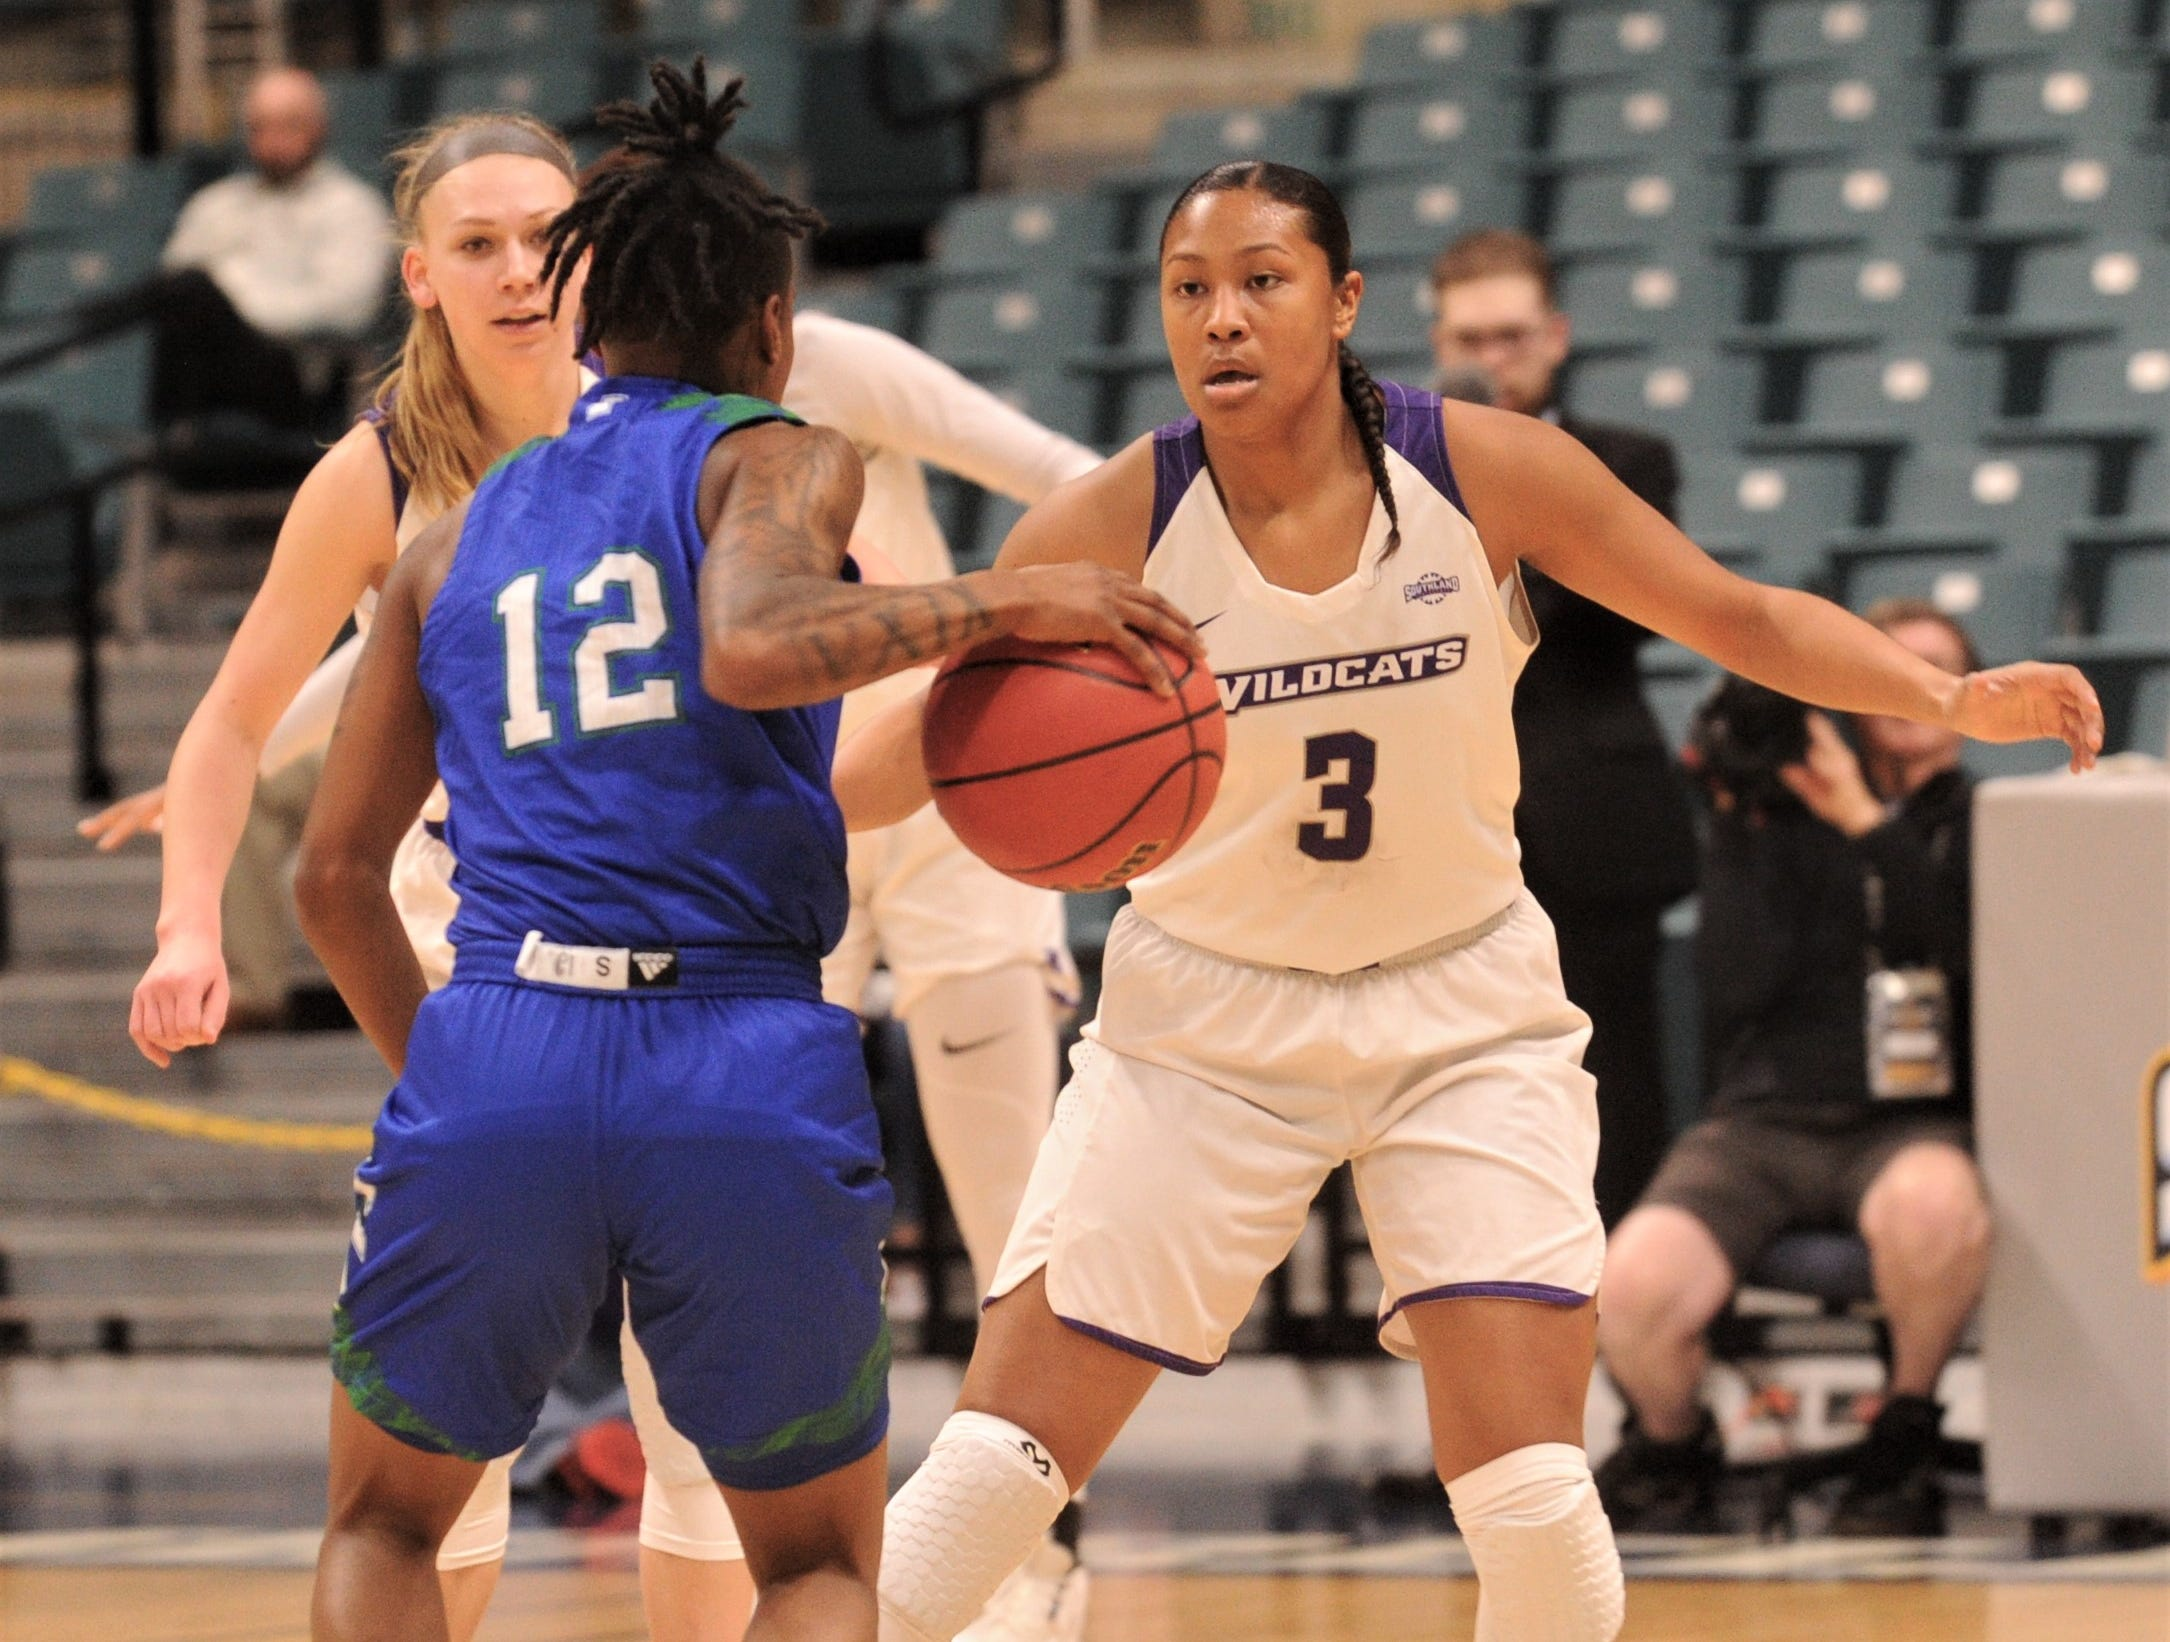 ACU's Dominique Golightly (3) defends against Texas A&M-Corpus Christi's Dae Dae Evans in the first quarter of the Southland Conference Tournament championship game Sunday, March 17, 2019, at the Merrell Center in Katy.